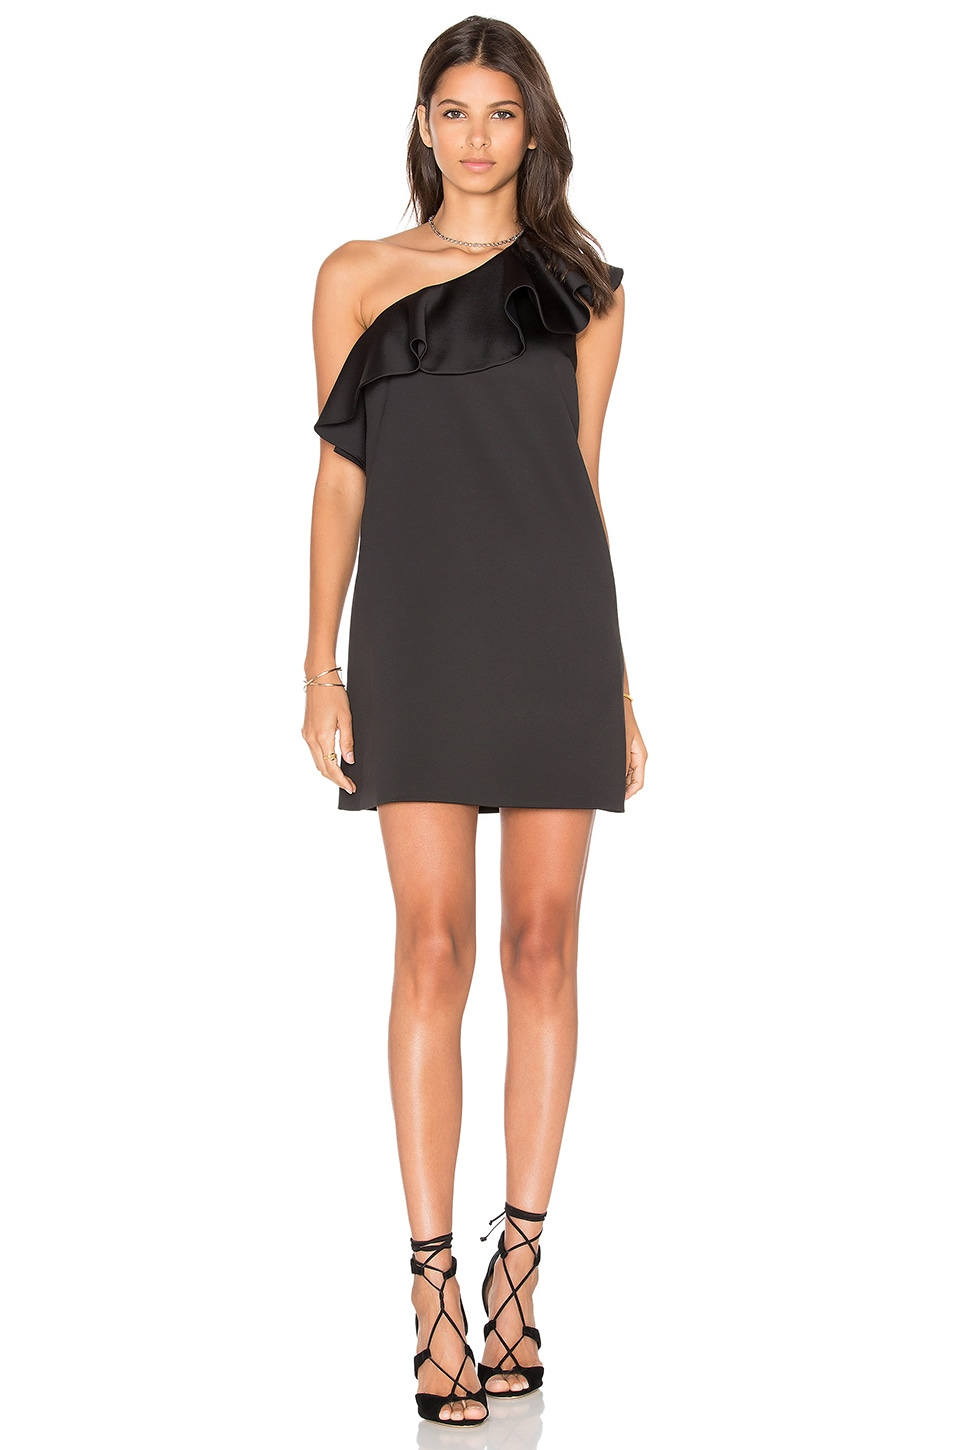 Satin Ruffle Mini Dress by Cynthia Rowley